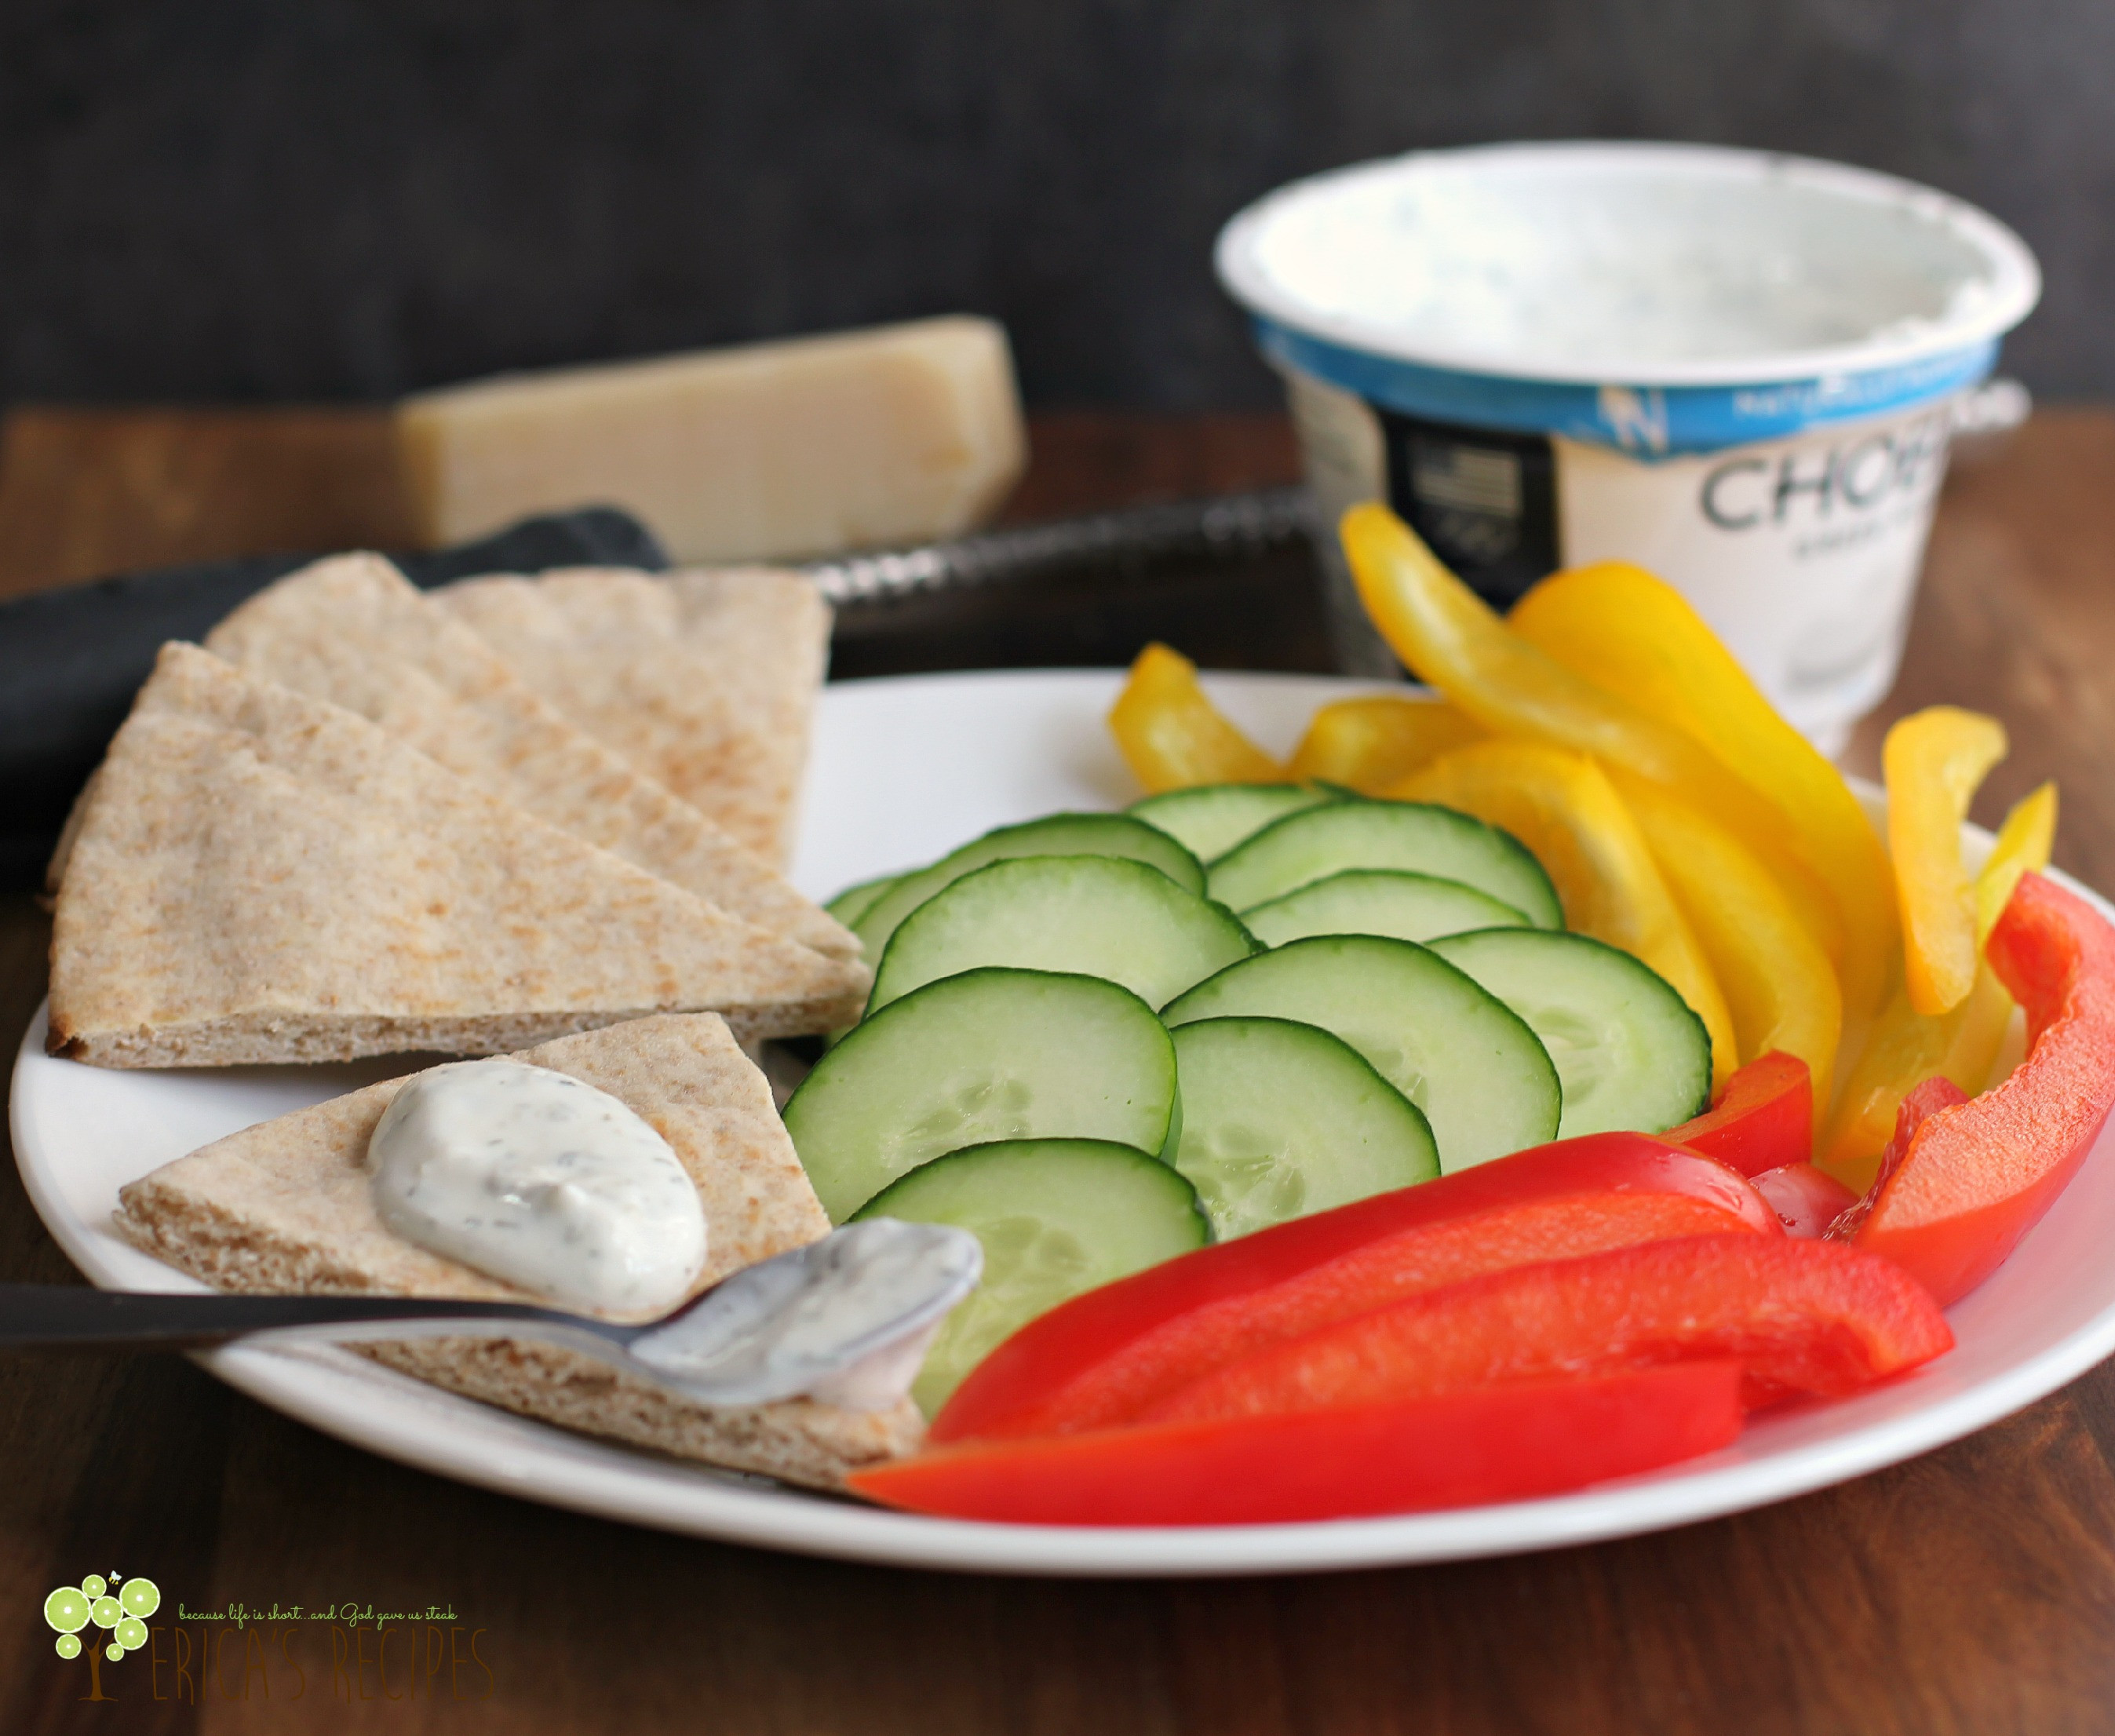 Healthy Snacks For Working Out  10 Healthy Snack Ideas for the Workweek Erica s Recipes